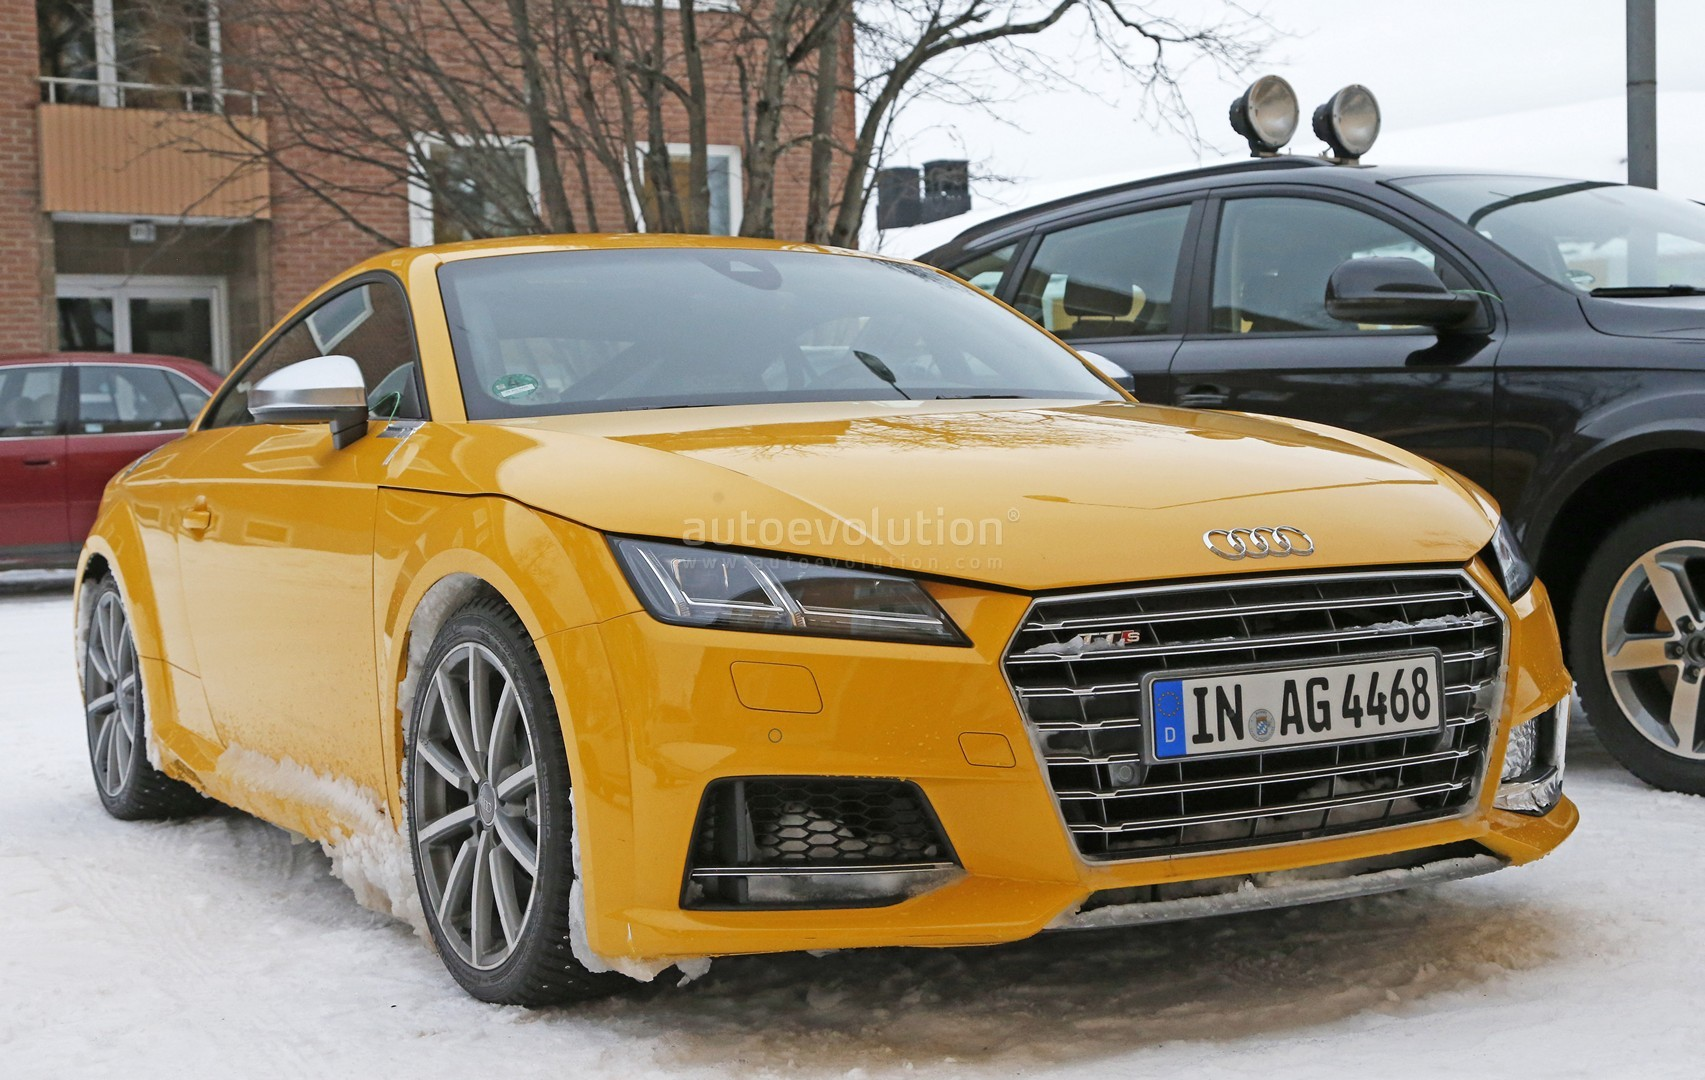 Audi TT RS Spy Photos Reveal Manual Gearbox For The First Time - Audi tt manual transmission